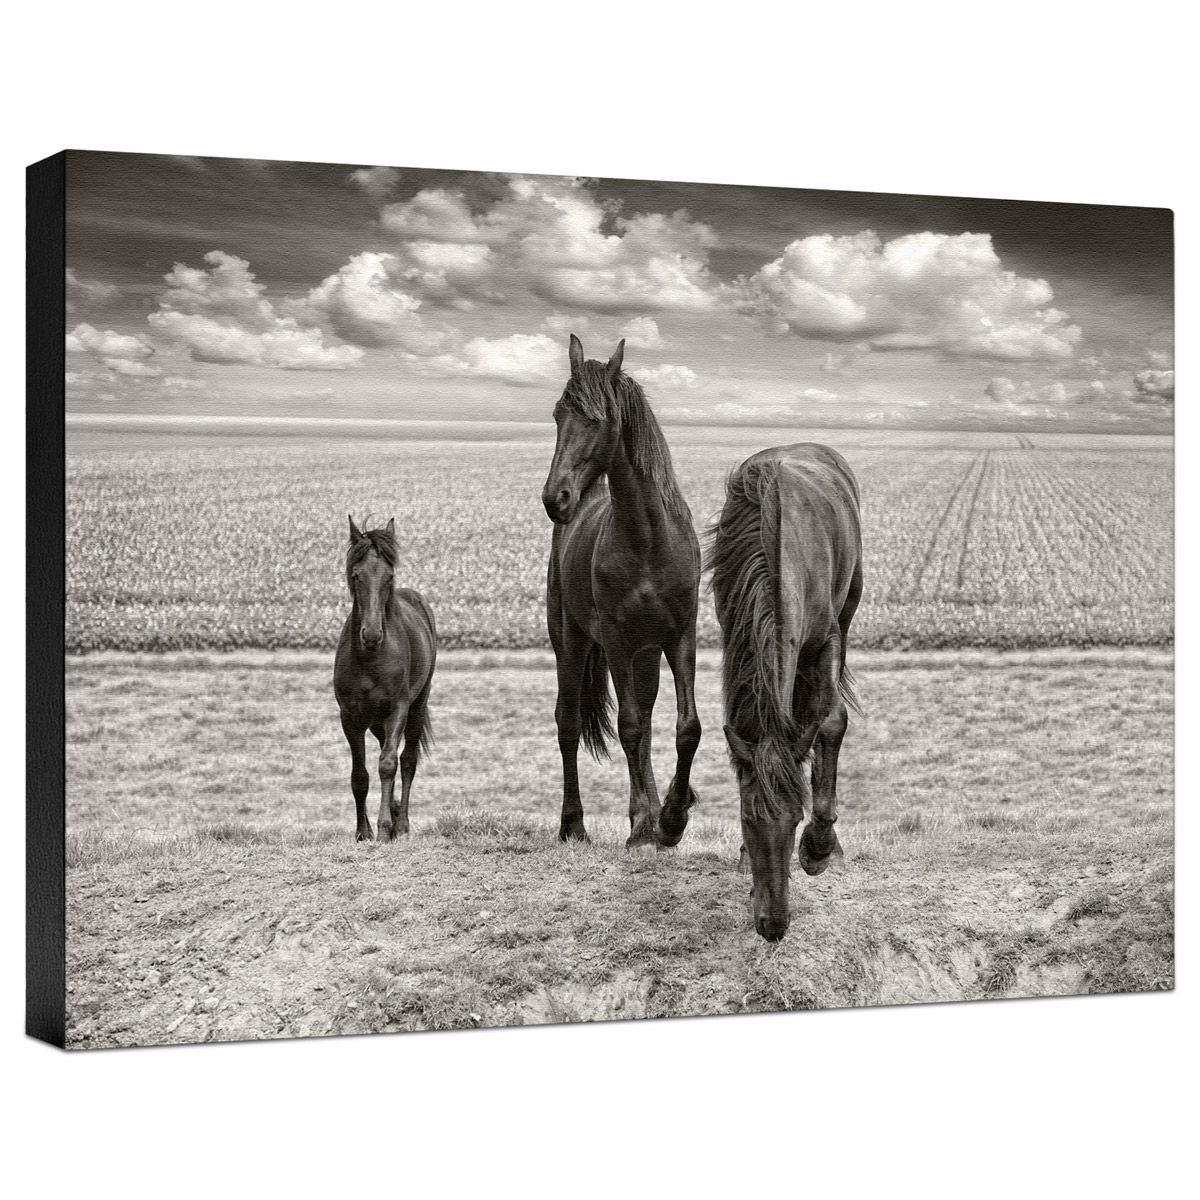 At Your Service Gallery Wrapped Canvas